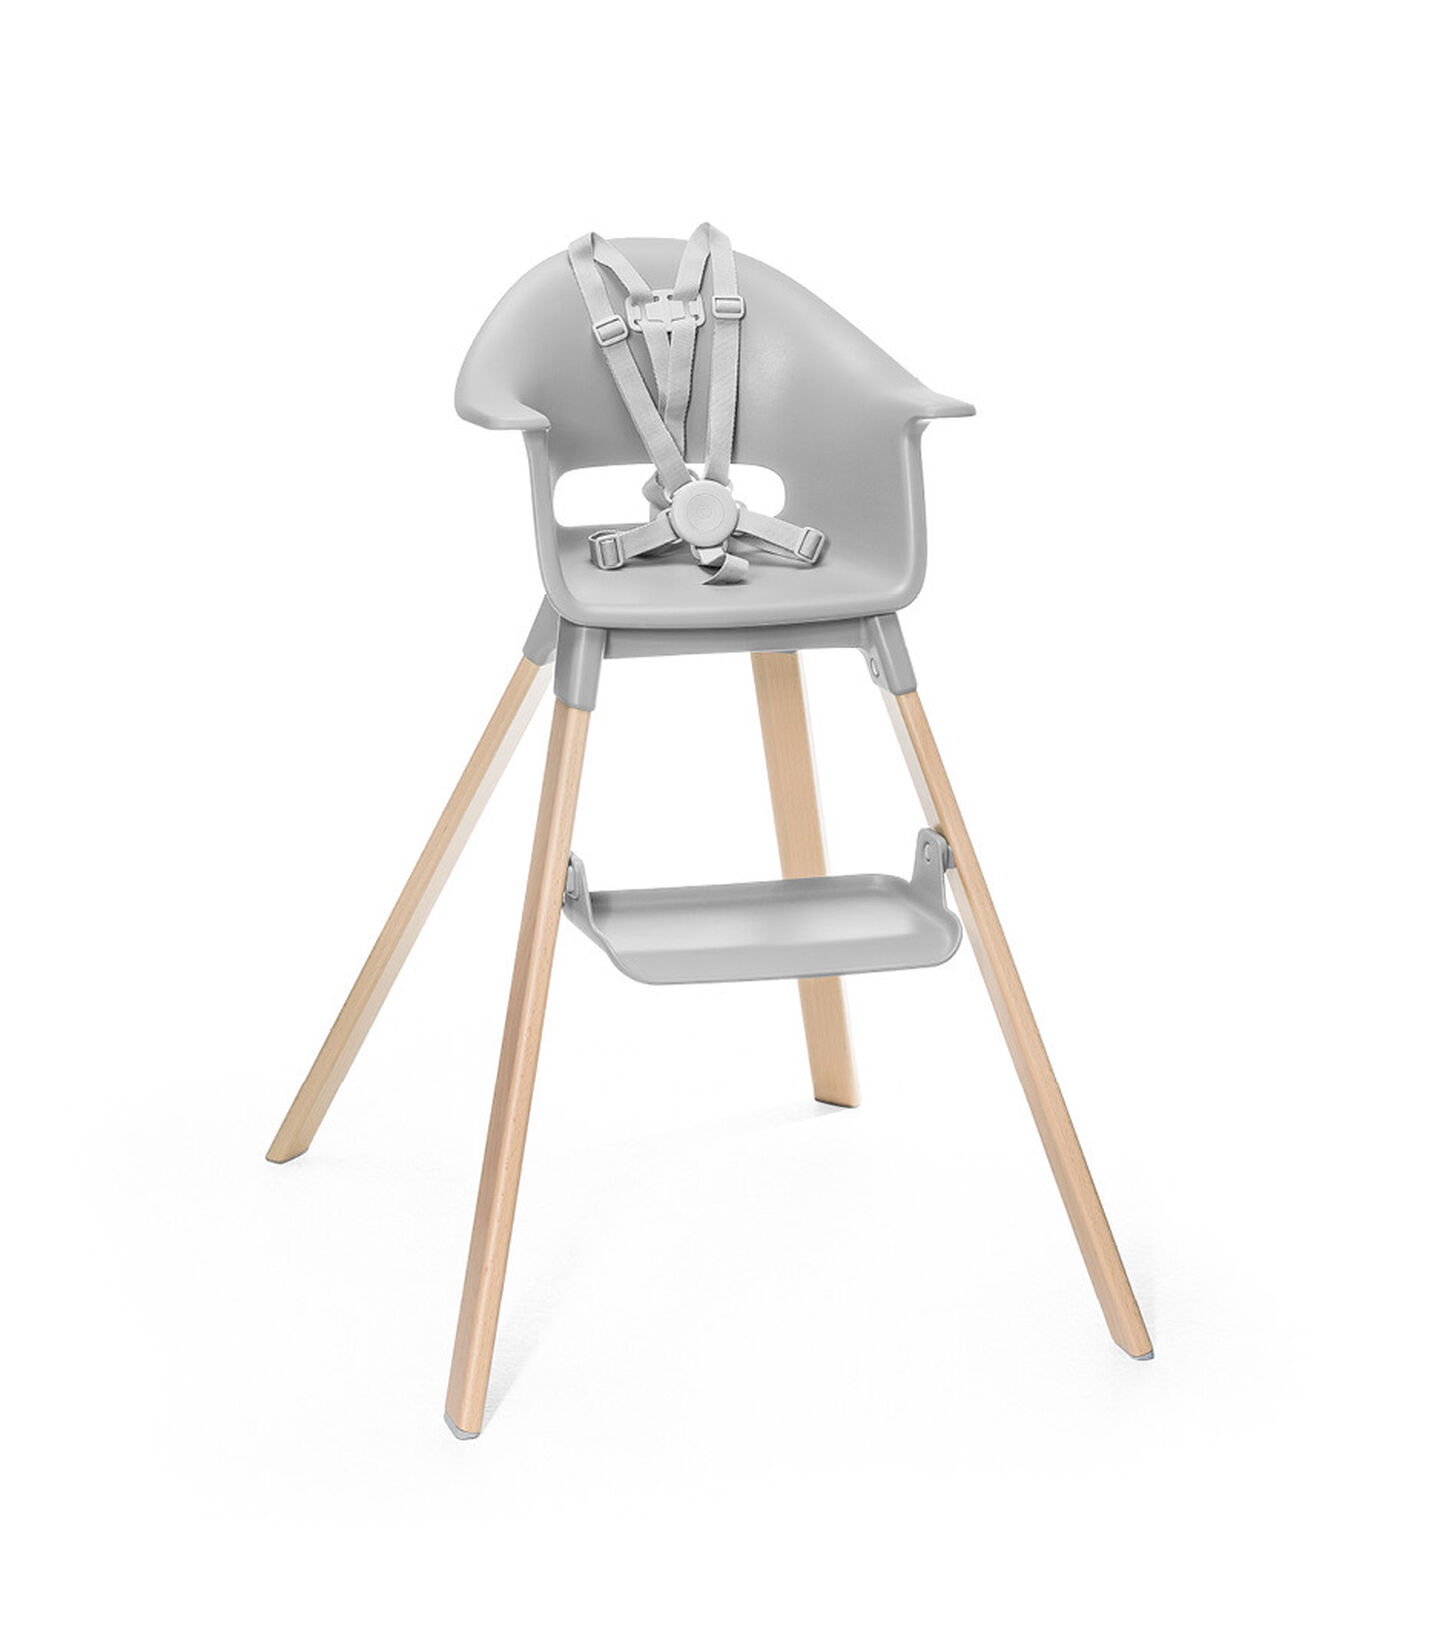 Stokke® Clikk™ High Chair. Natural Beech wood and Light Grey plastic parts. Stokke® Harness attached. Footrest high.